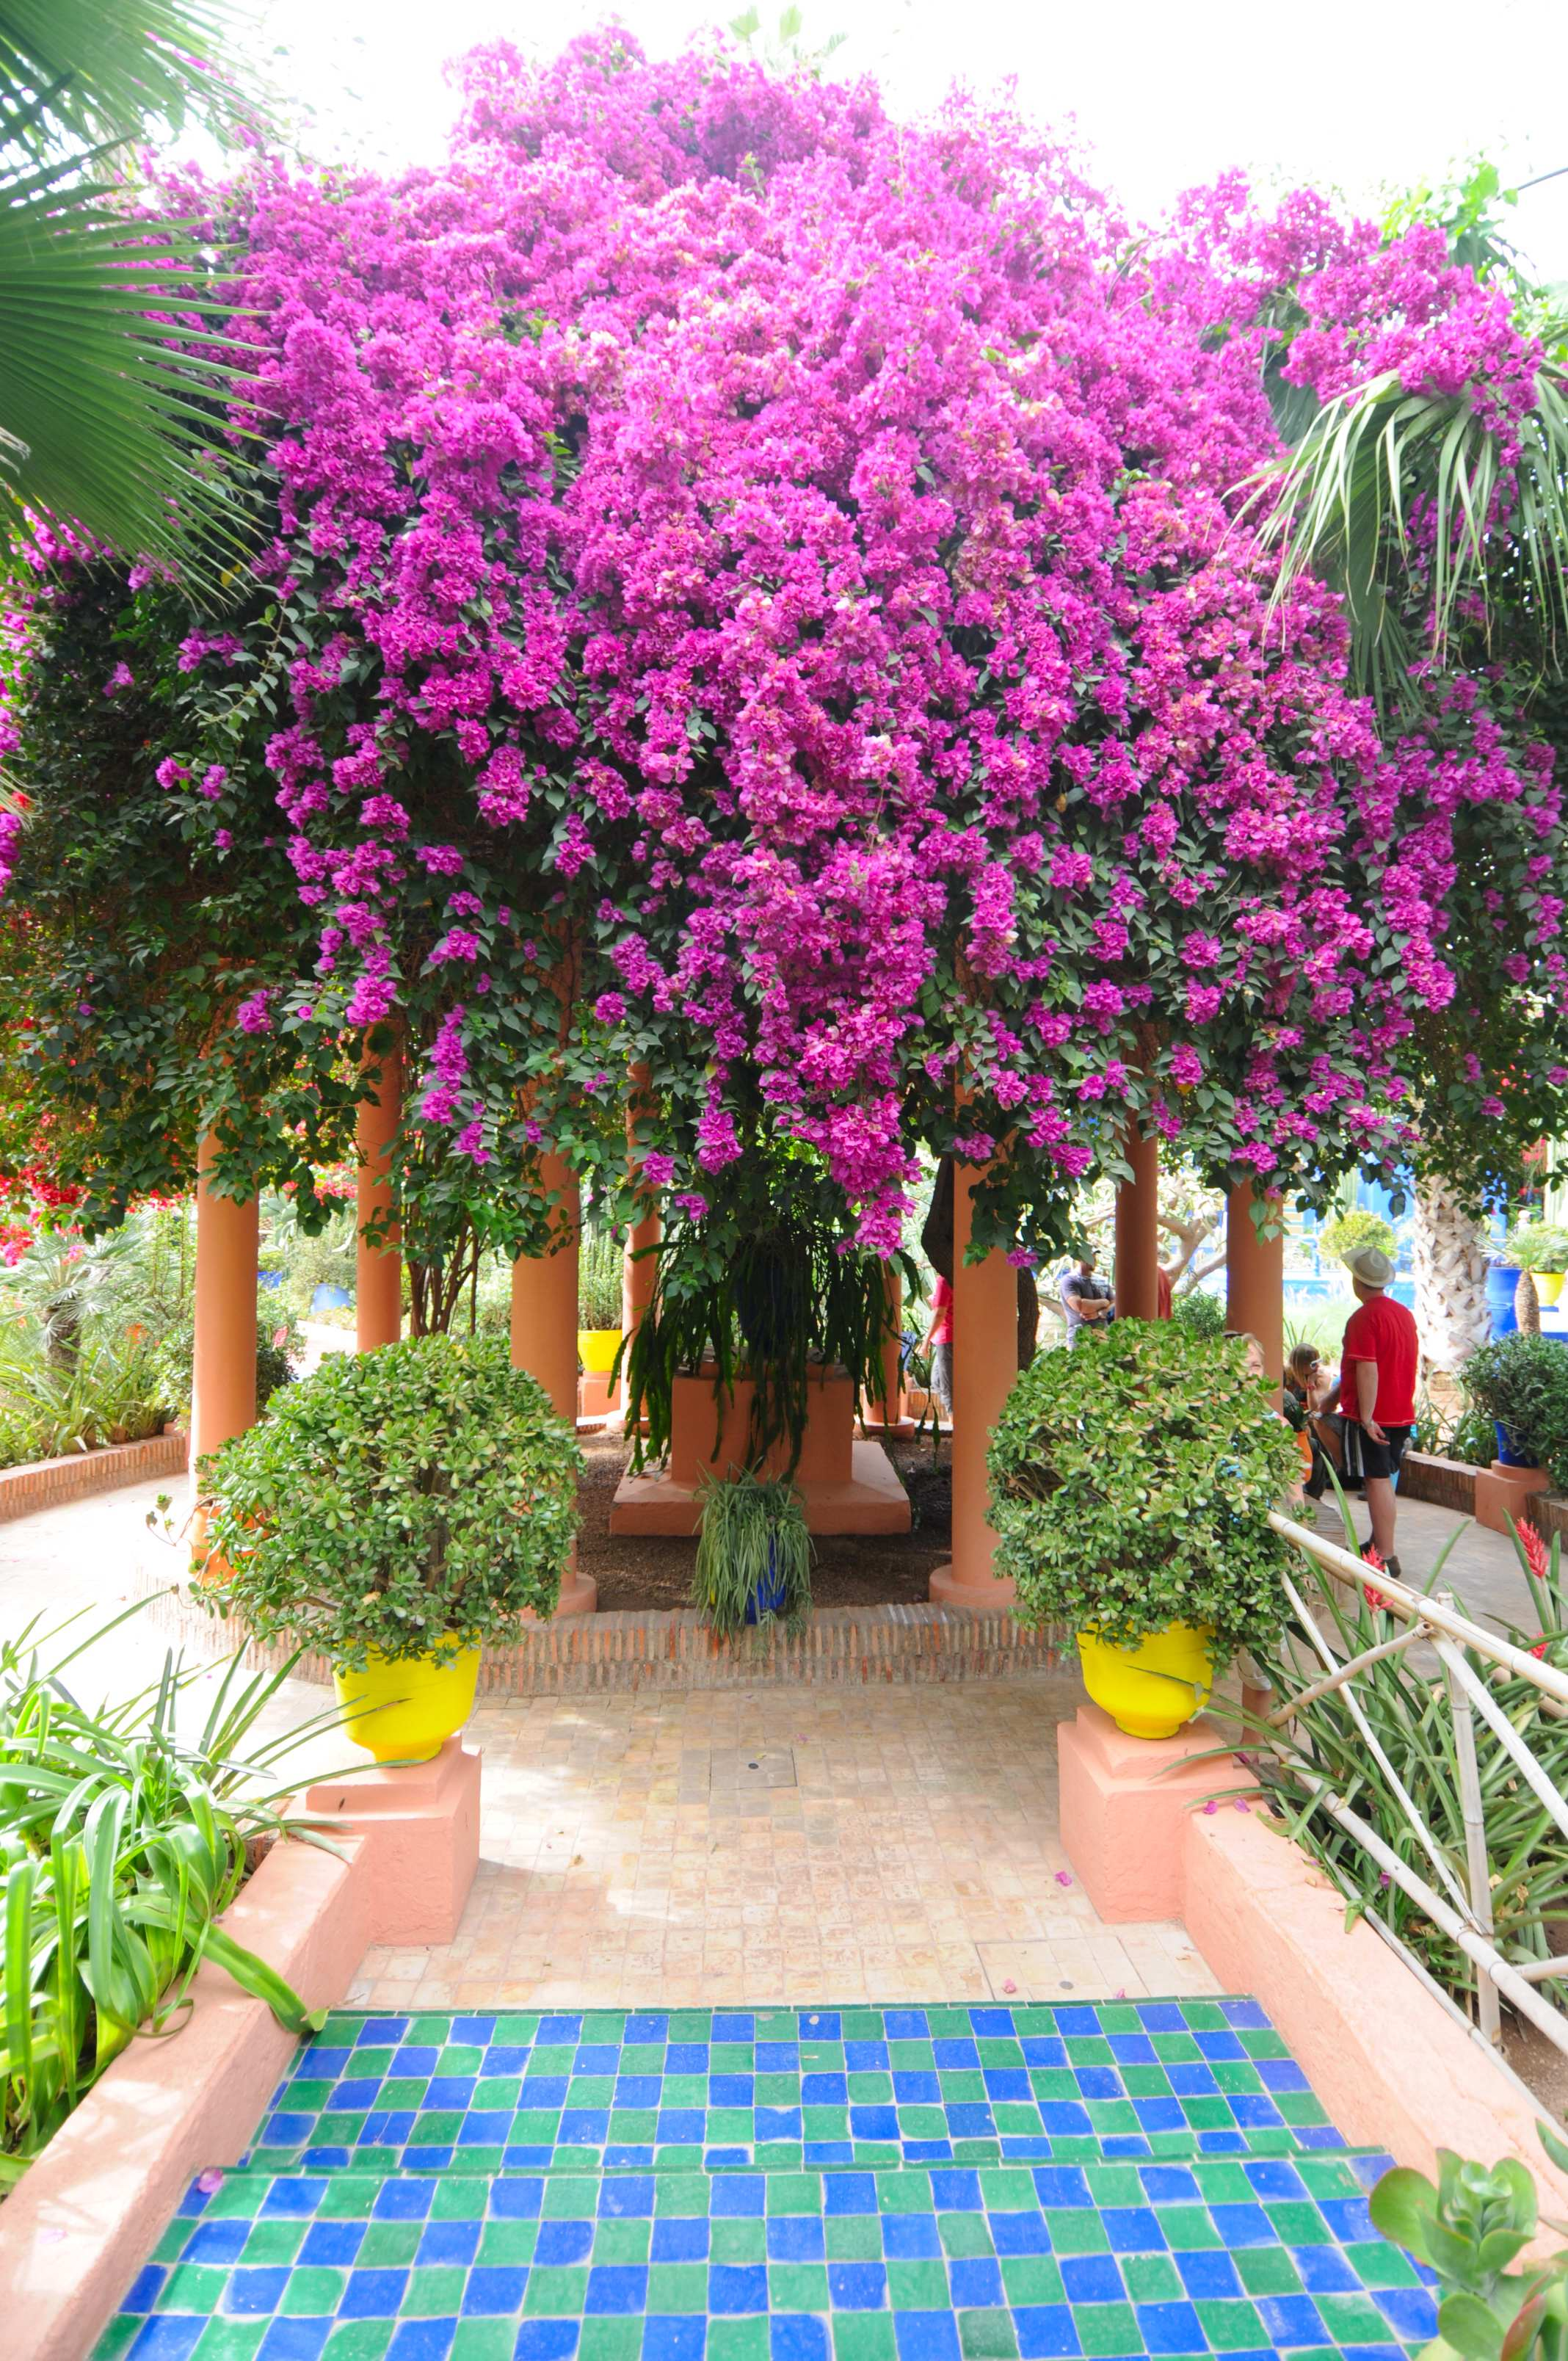 File le jardin des majorelle 7538 jpg wikimedia commons for Les jardins de lee